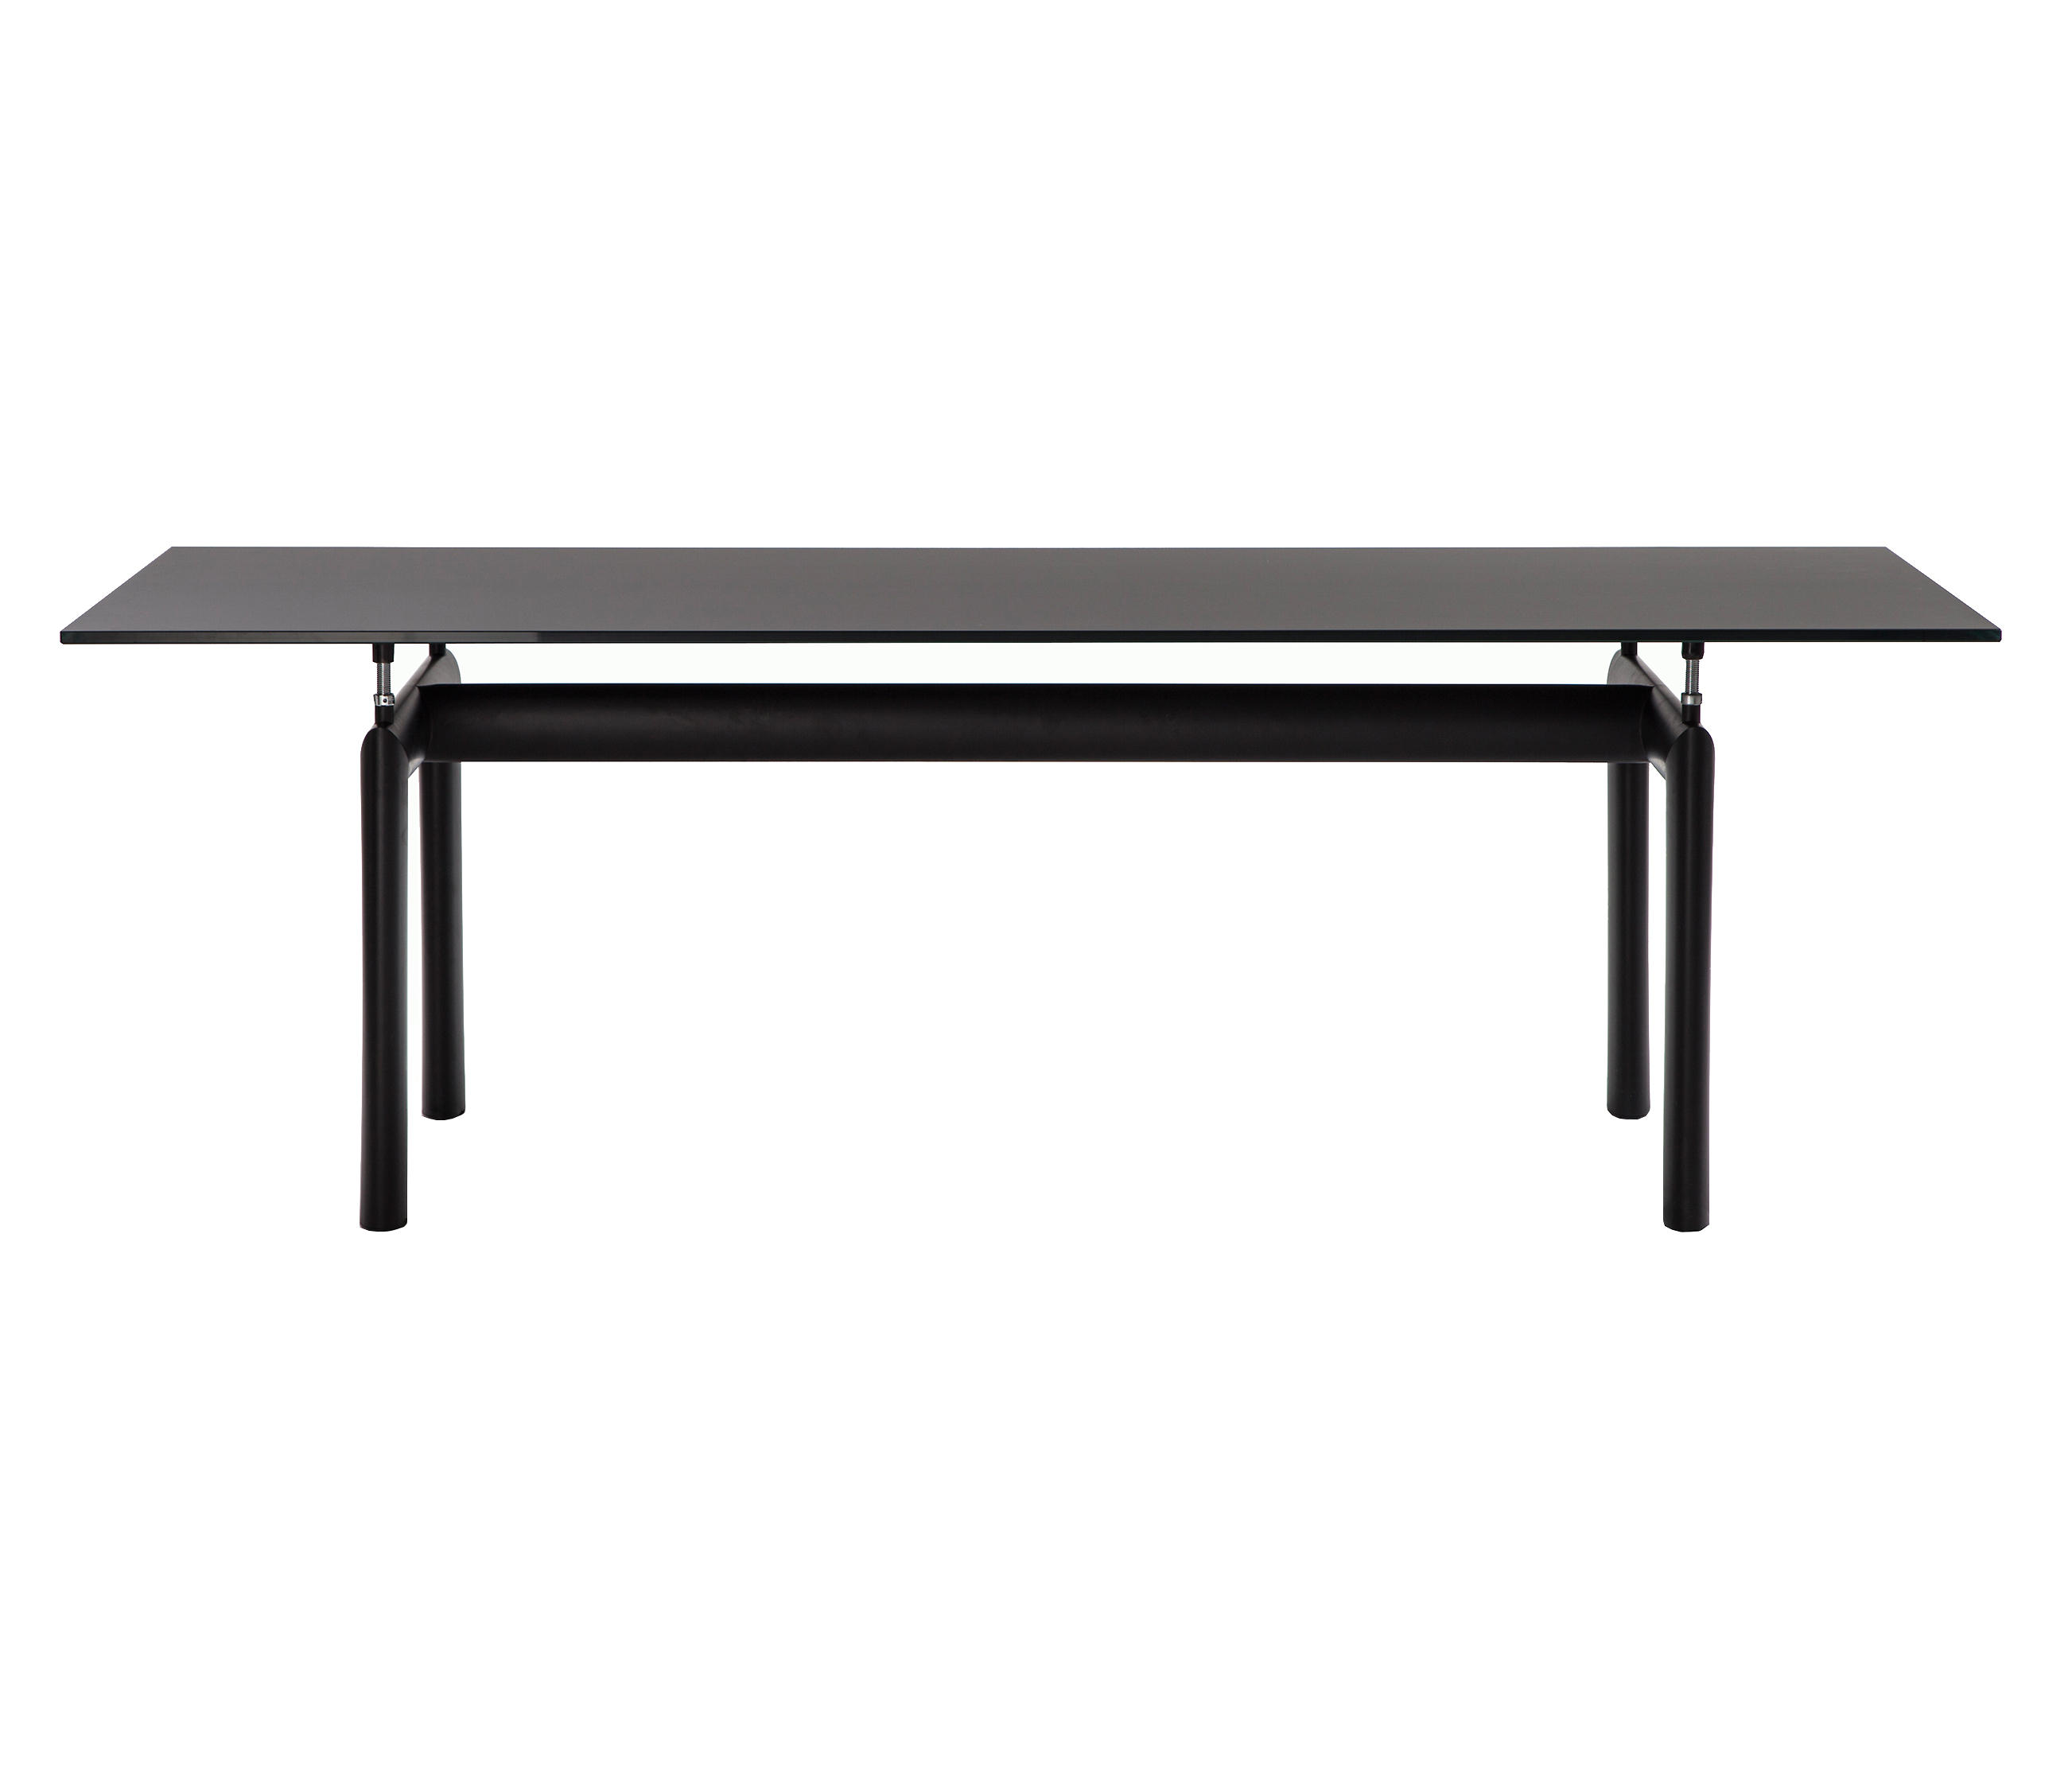 lc6 table executive desks from cassina architonic. Black Bedroom Furniture Sets. Home Design Ideas